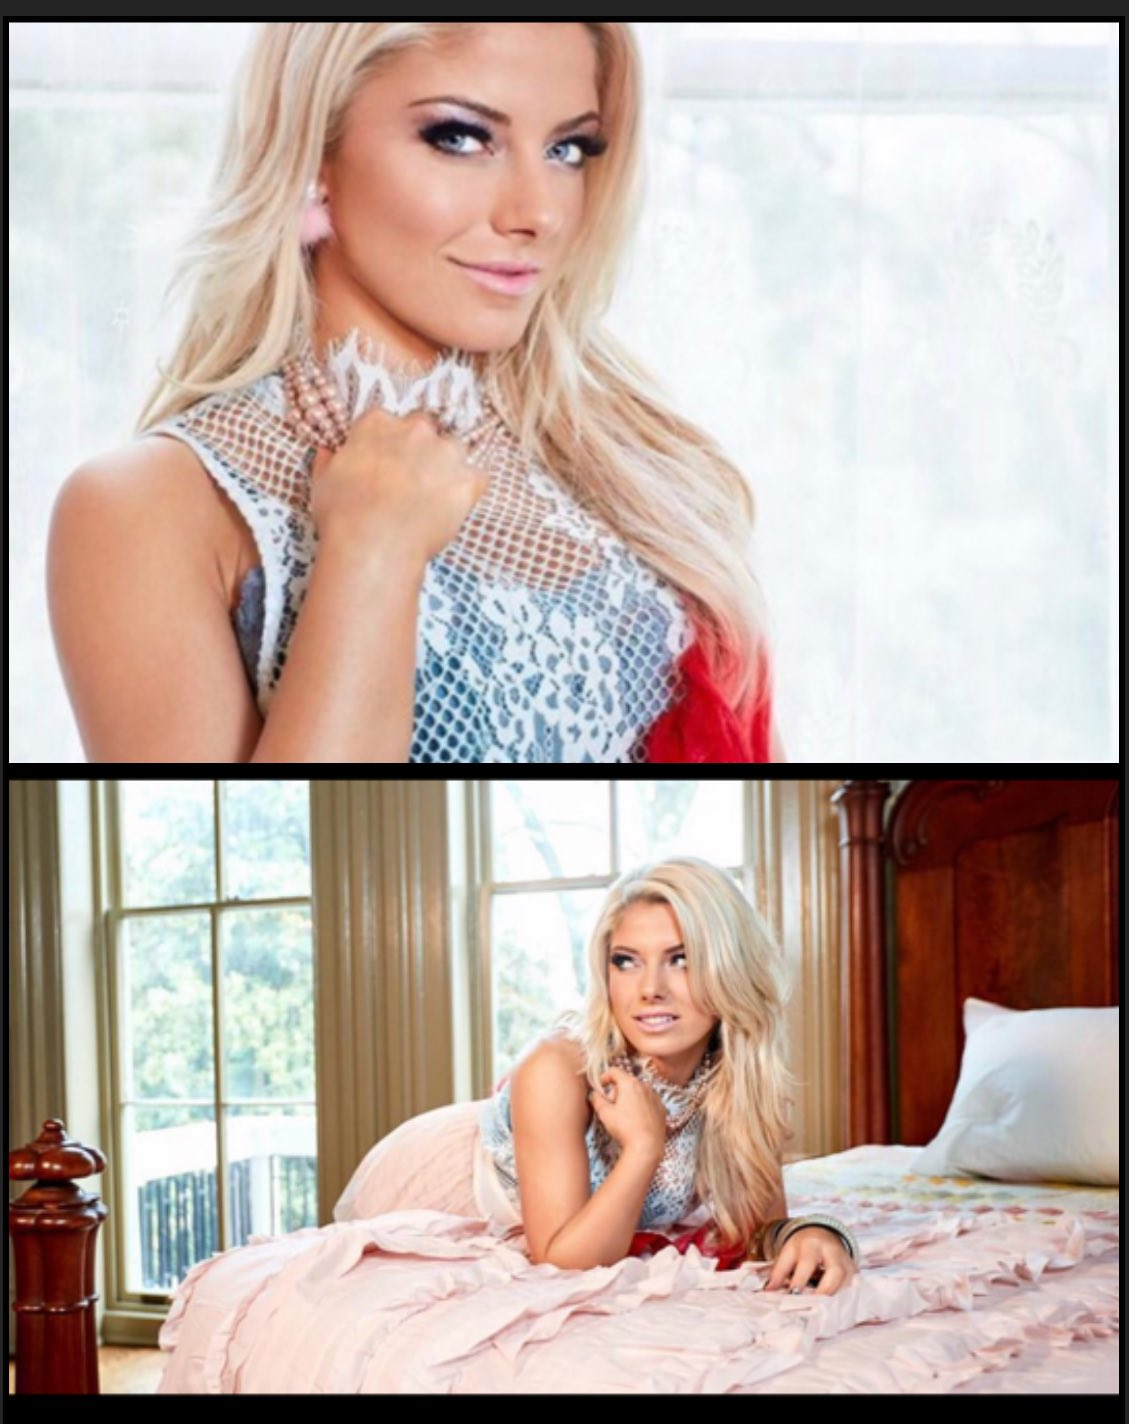 Alexa Bliss 2020 : Alexa Bliss – Instagram and social media-98